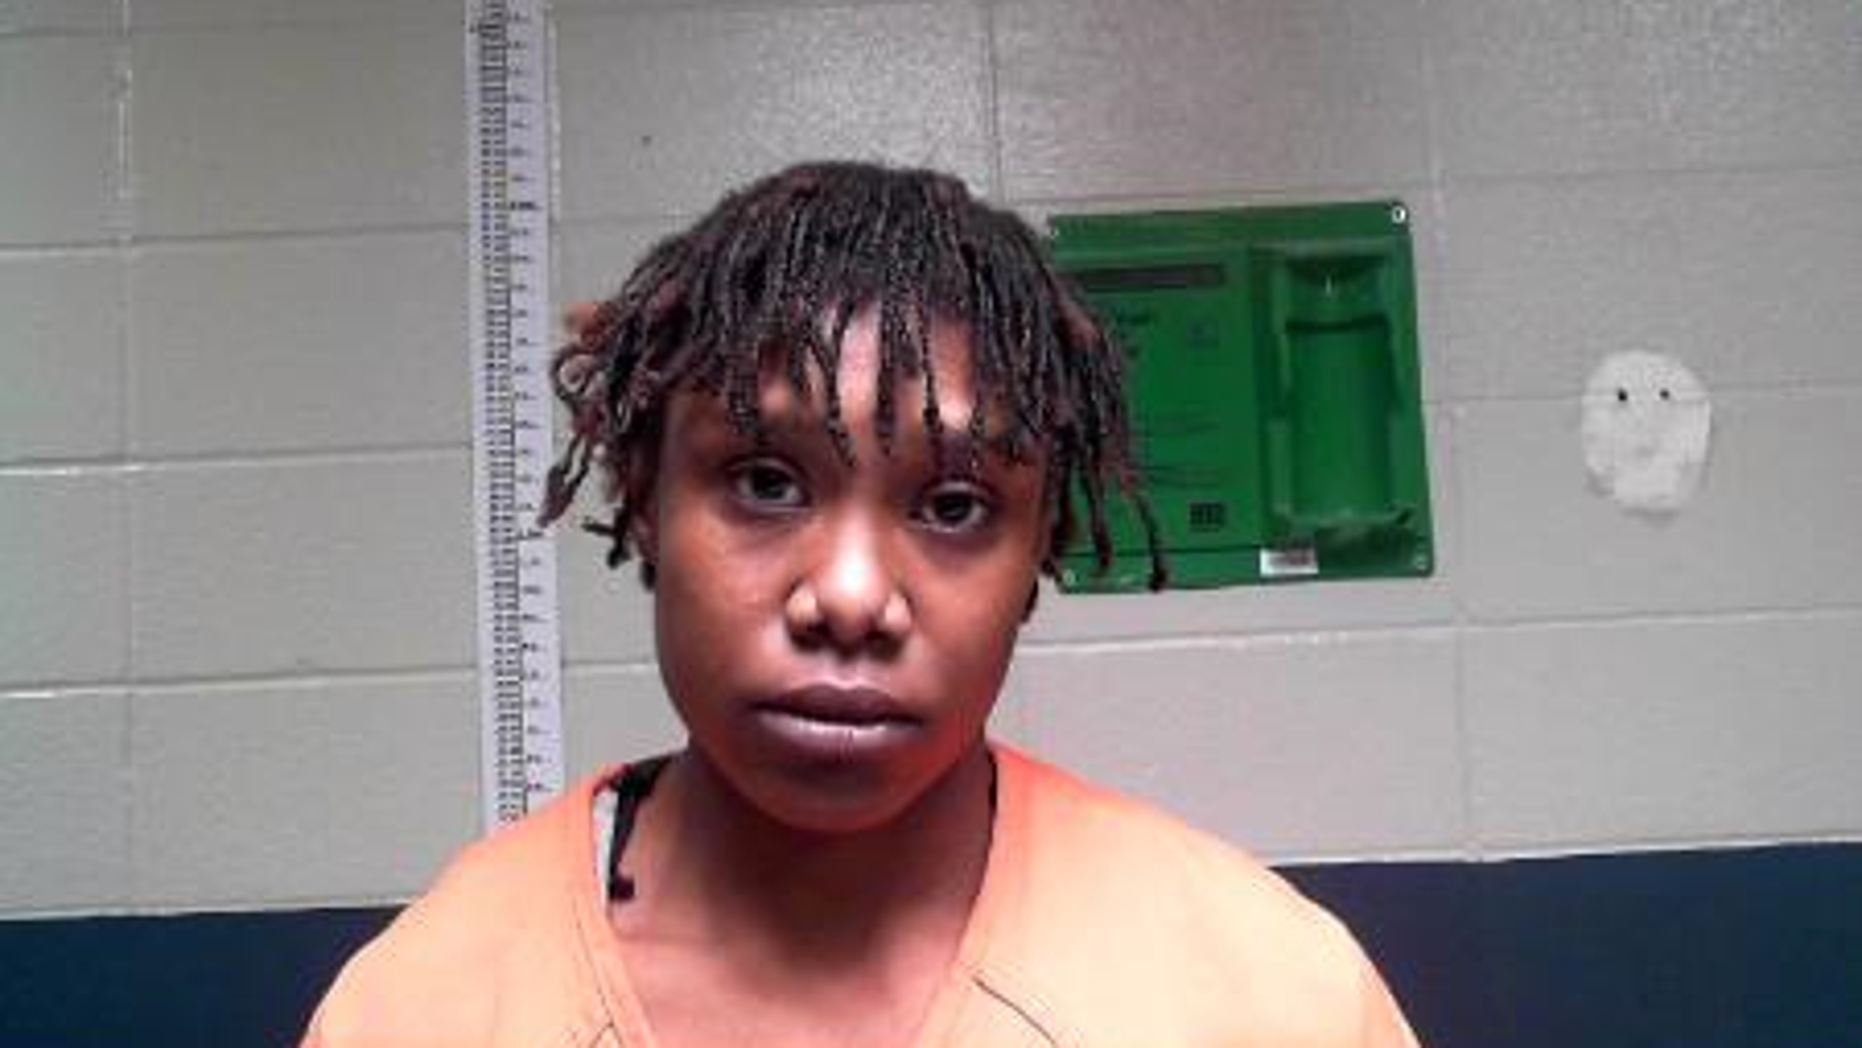 Felicia Marie-Nicole Smith, 25, was arrested in connection with a 6-month-old baby's death.